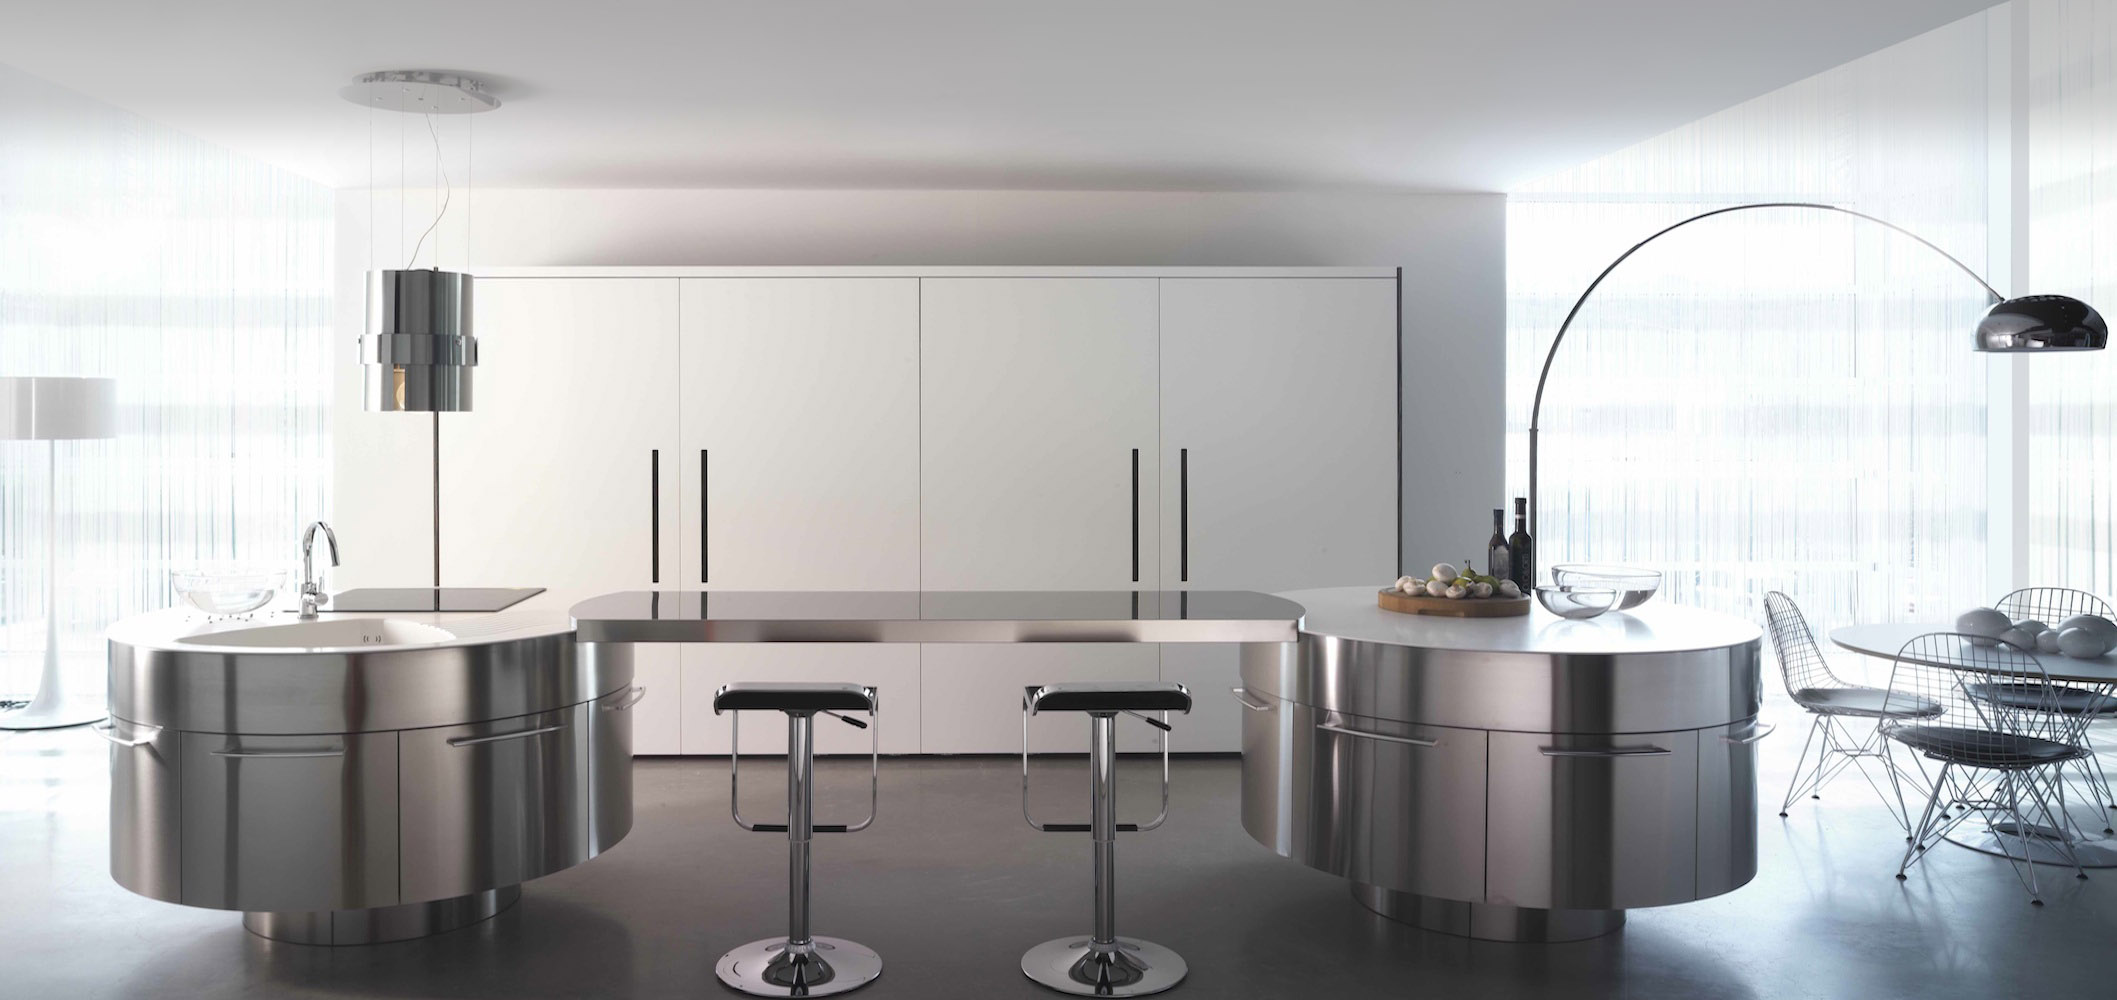 Merveilleux Twin Circular Metallic Islands Are Connected Via Metal Countertop Bridge In  This Modern Kitchen. Large